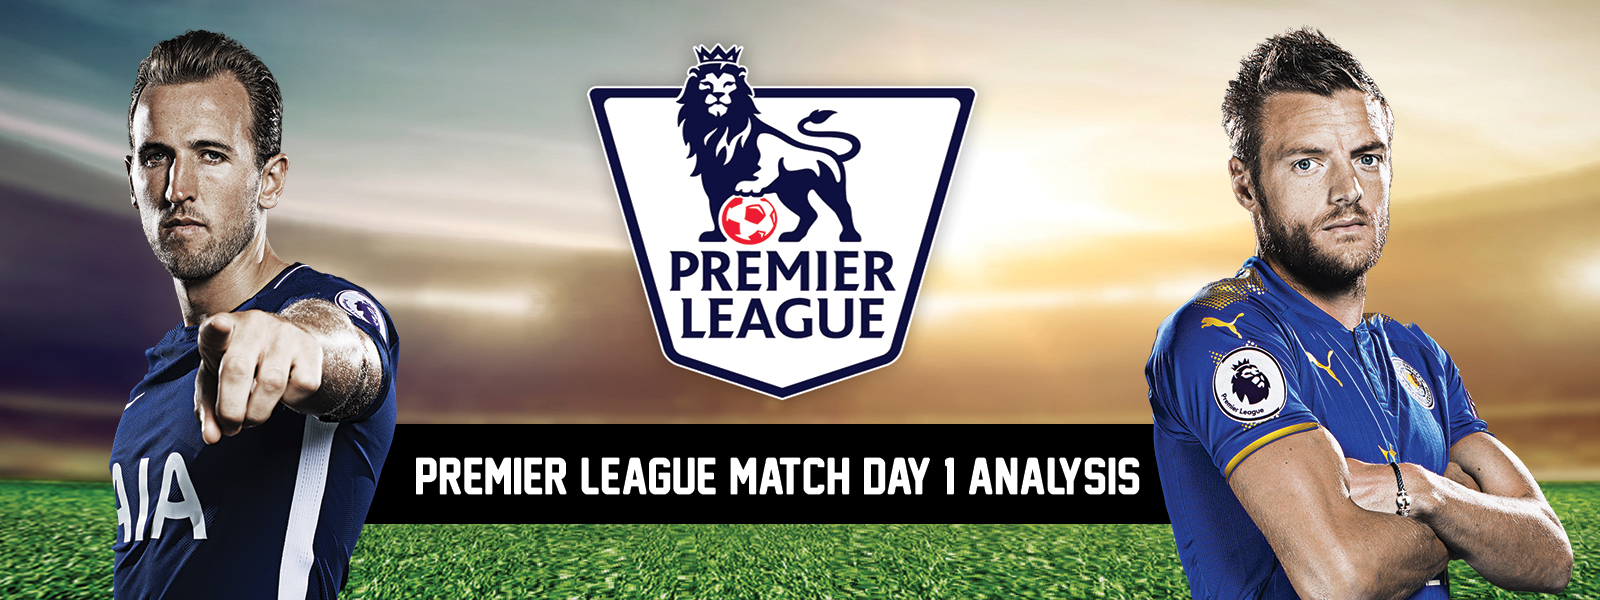 Soccer Tipsters Predictions on Premier League Opening Games